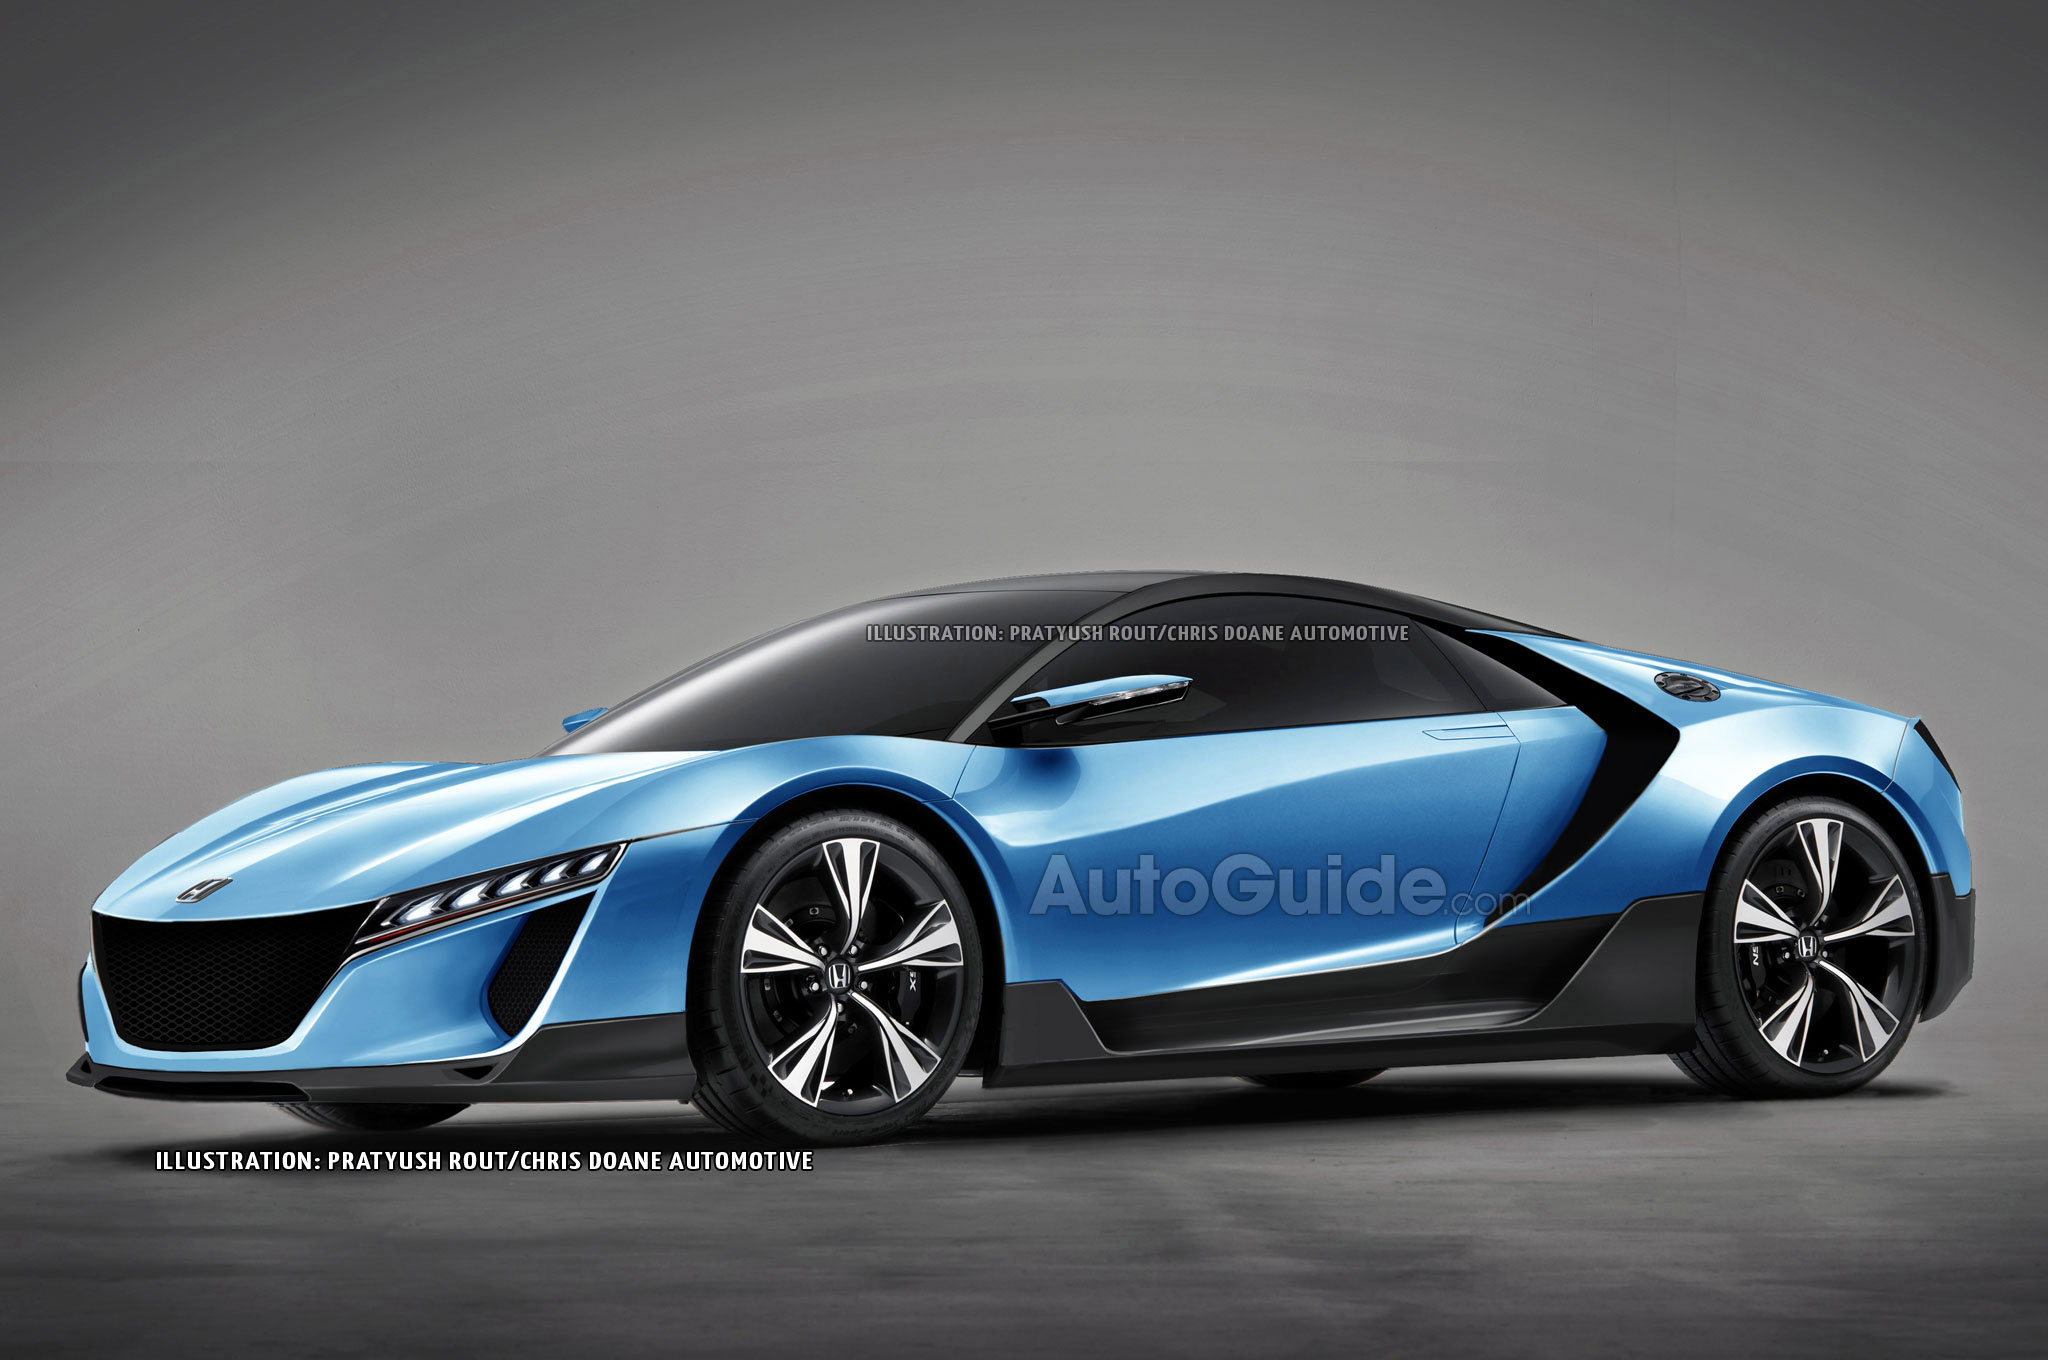 The Baby Honda Nsx Could Look Like This